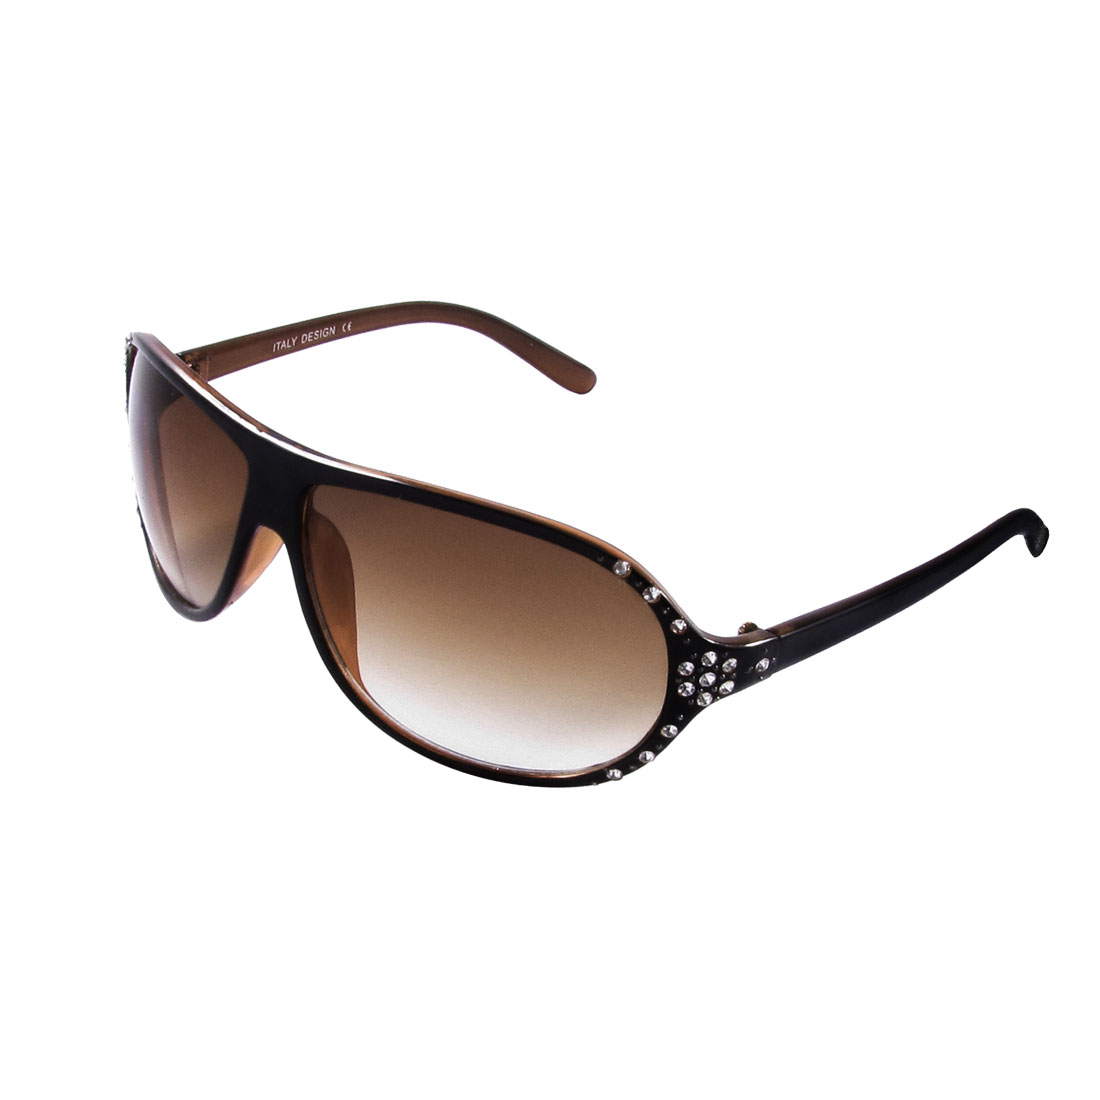 Lady Rhinestones Cluster Flower Decor Black Brown Rimmed Plastic Arms Sunglasses